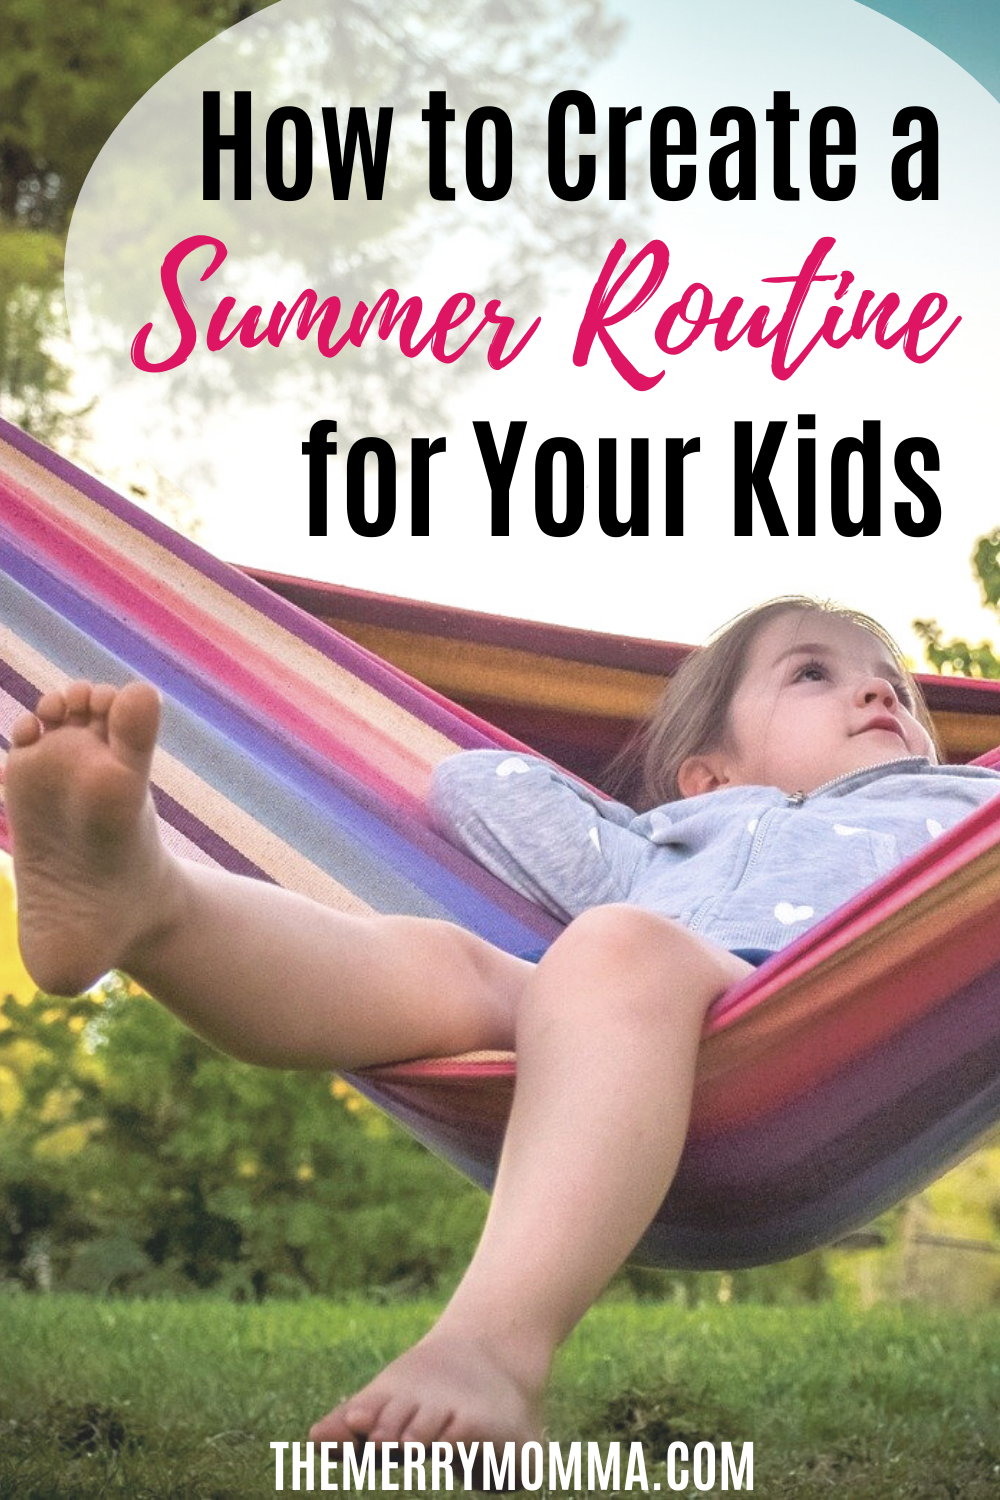 How to Create a Summer Schedule for Your Kids